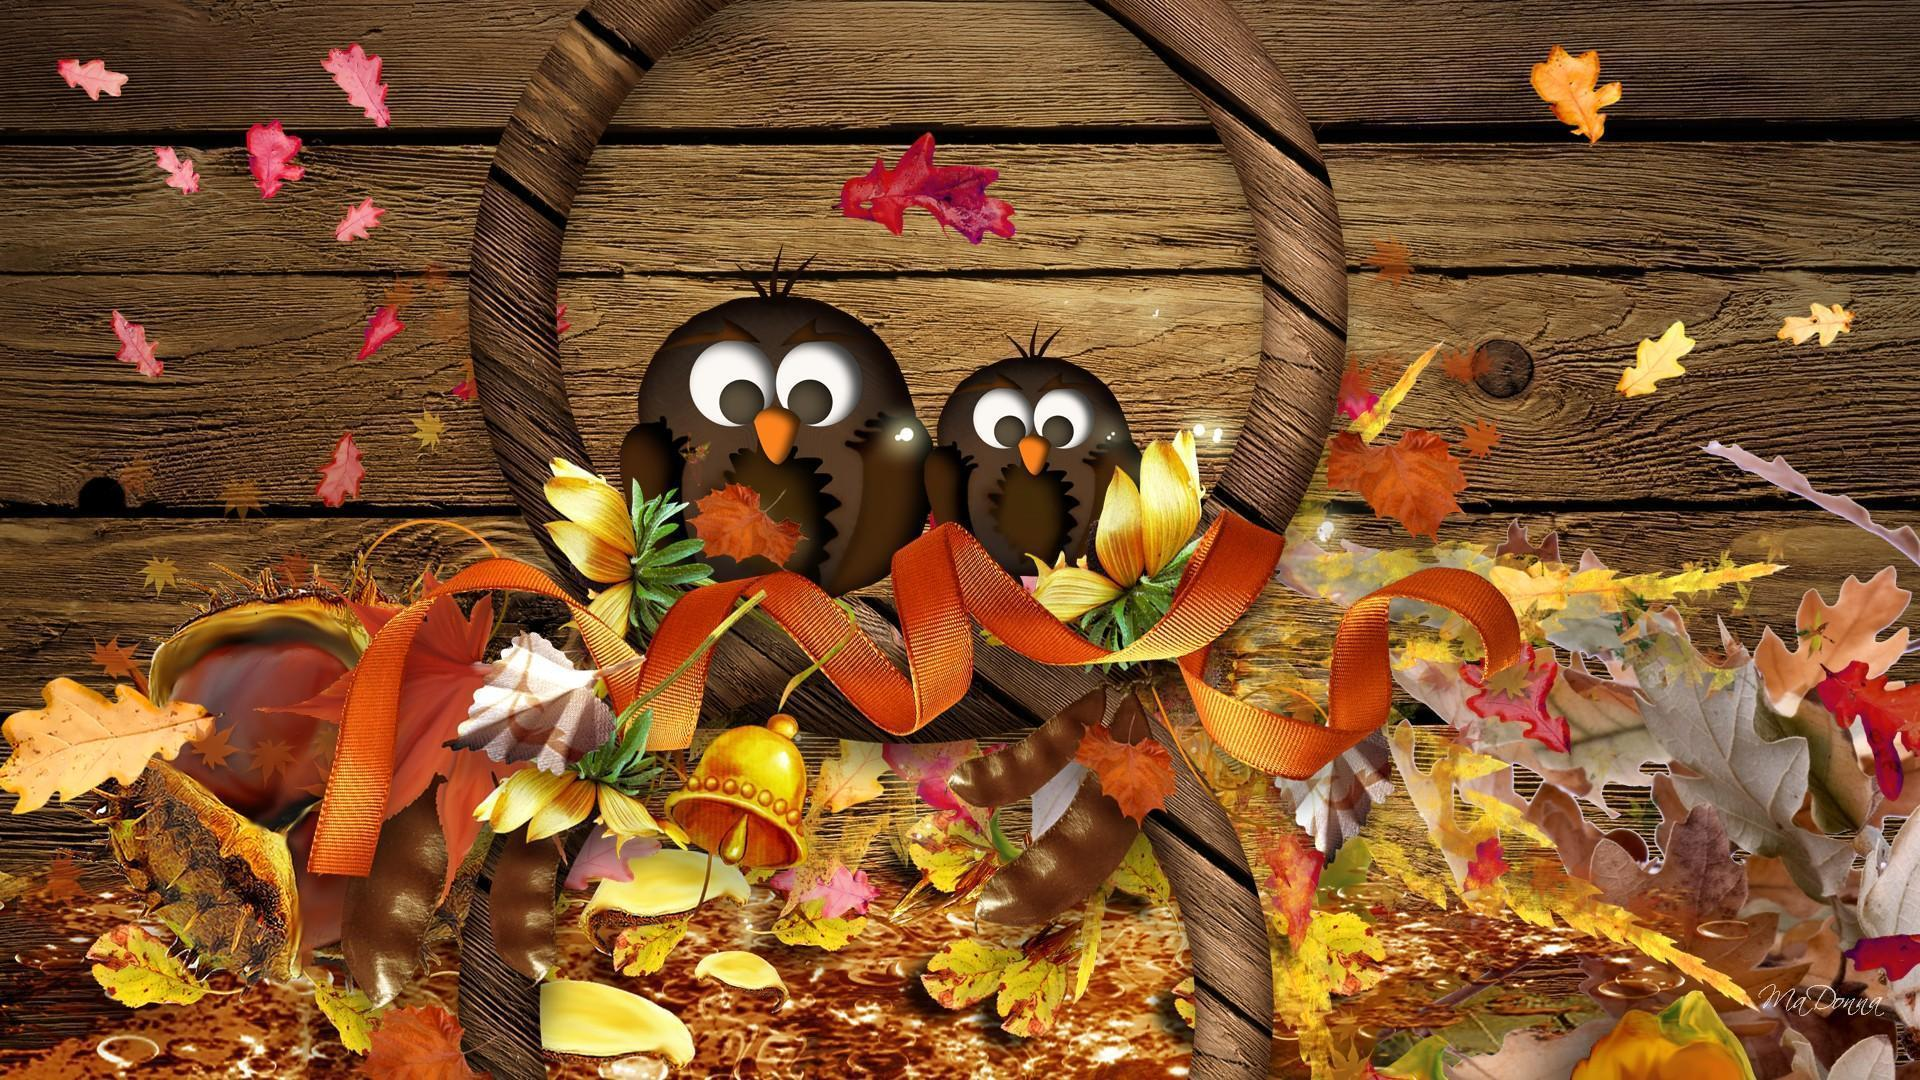 1920x1080 thanksgiving wallpaper: Fall Thanksgiving Wallpapers